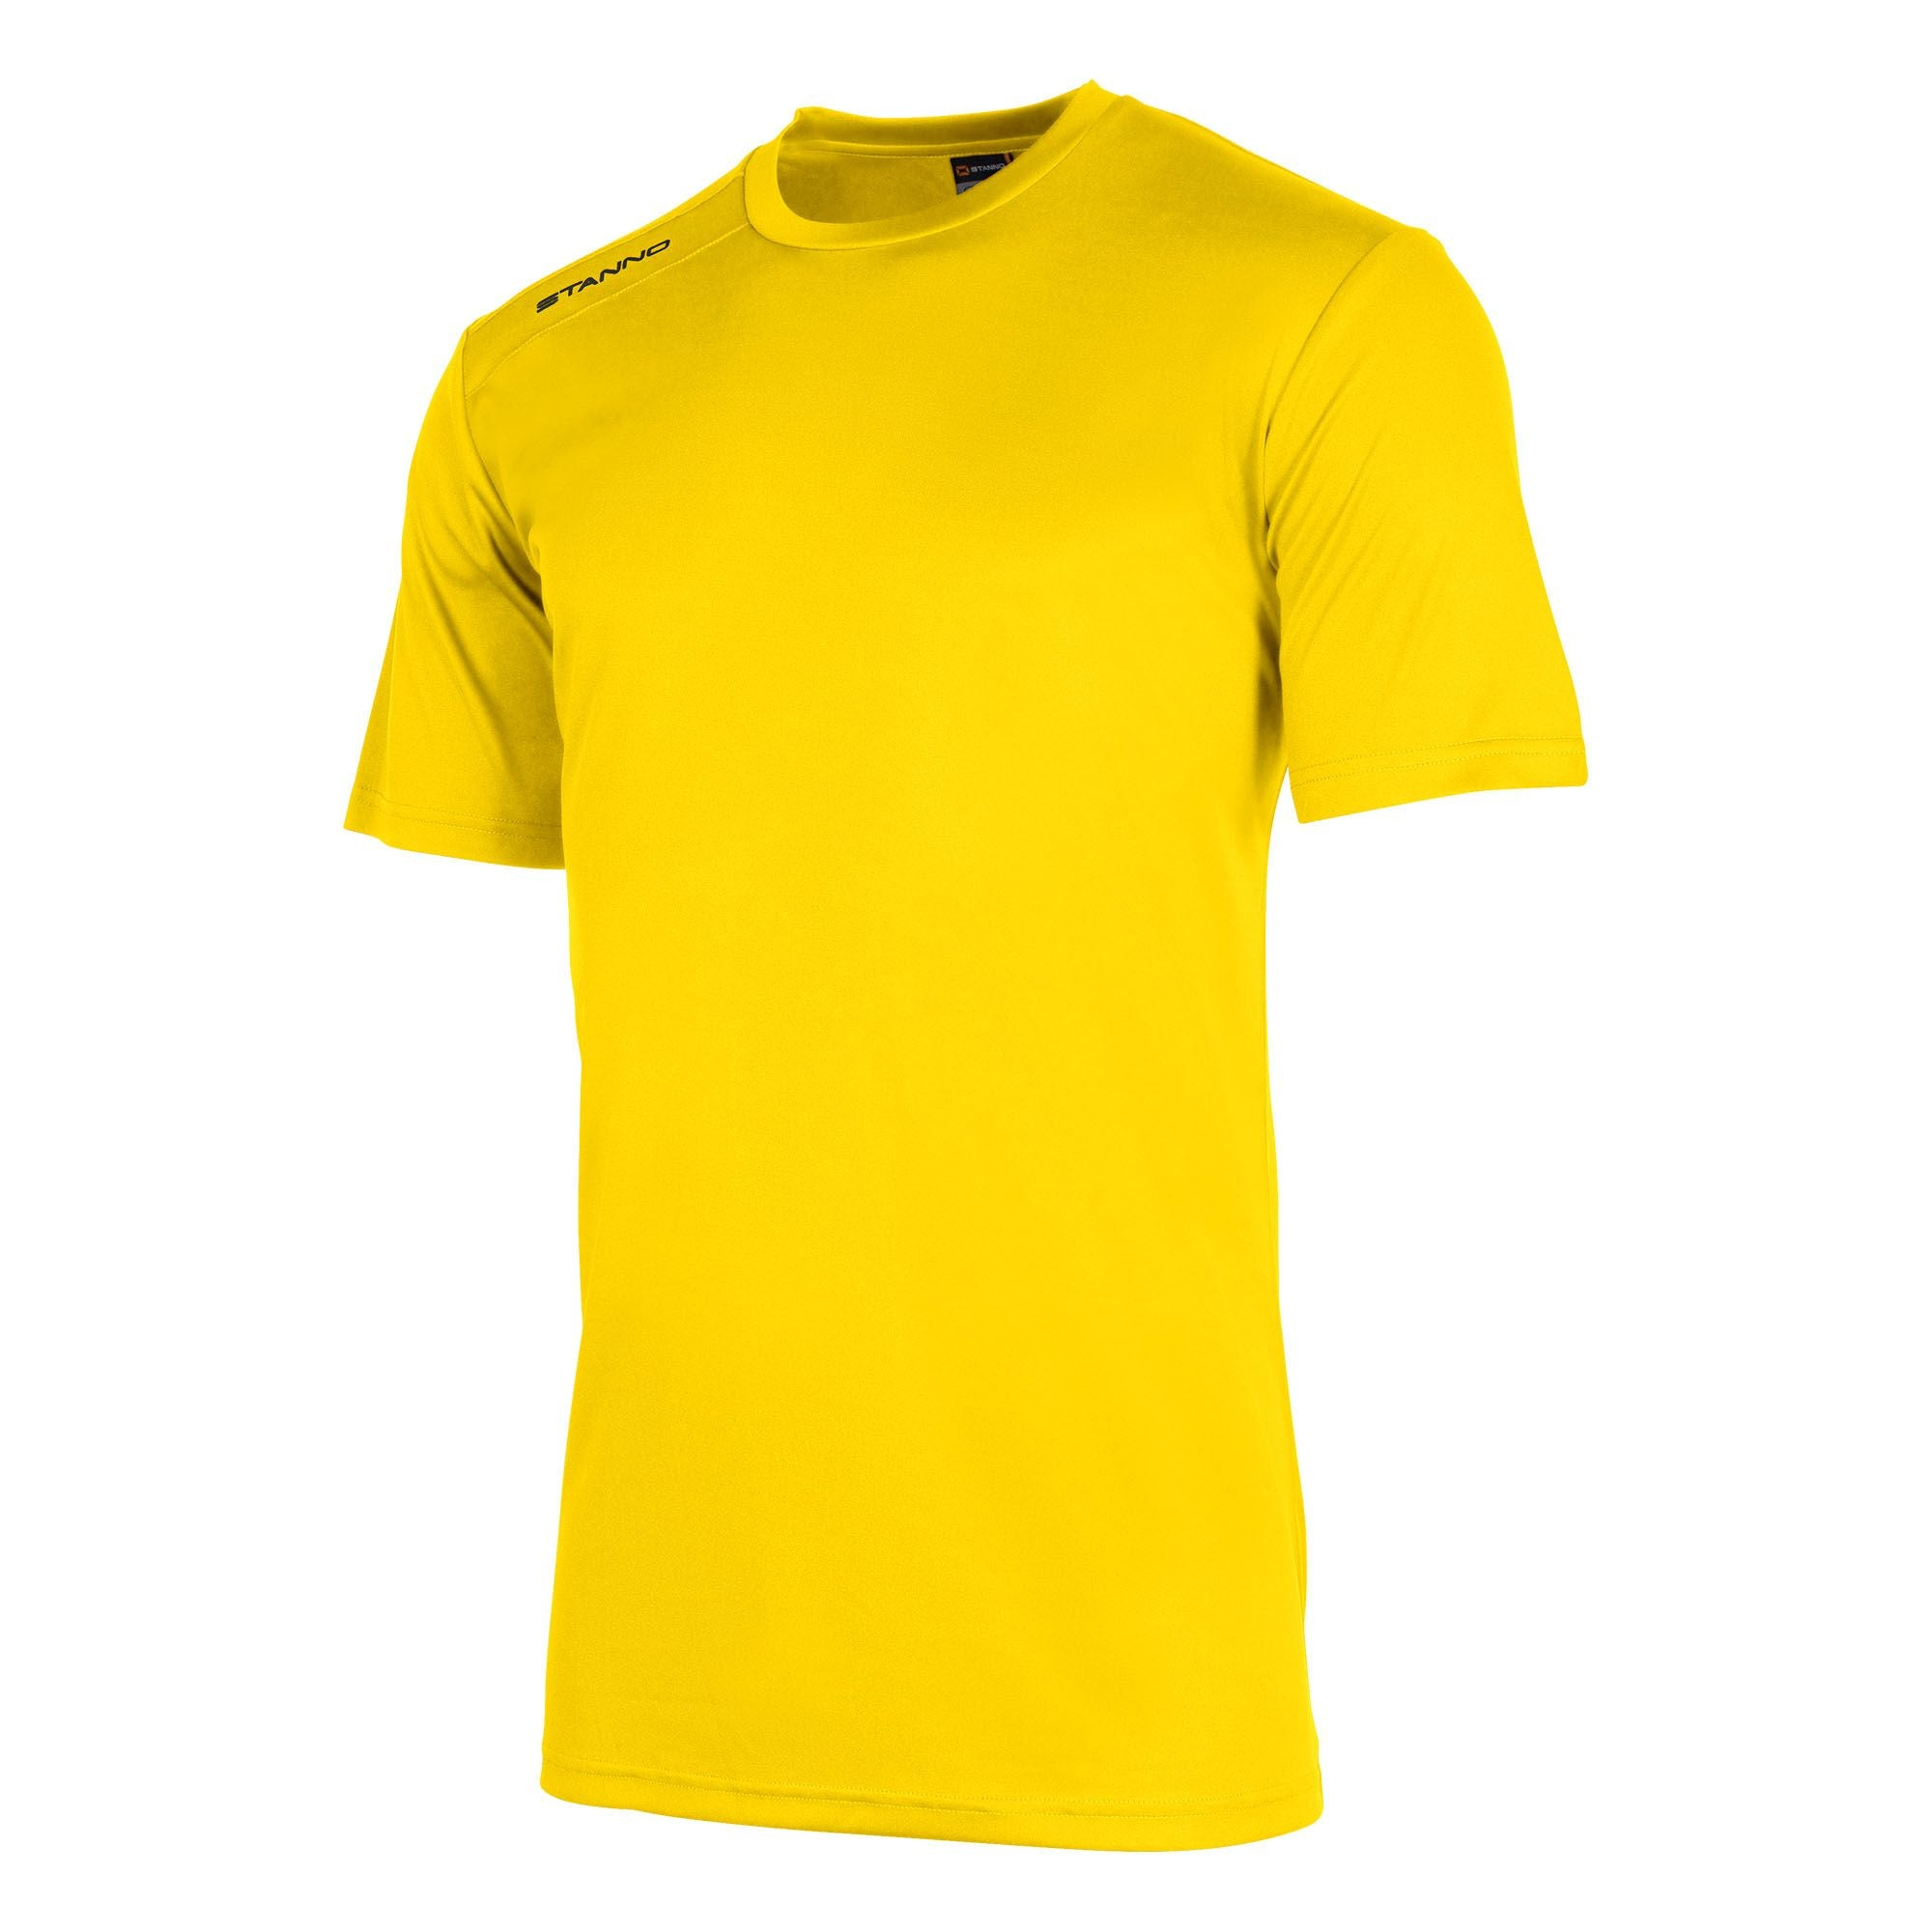 Front of Stanno field short sleeve shirt in yellow with black Stanno logo on right shoulder